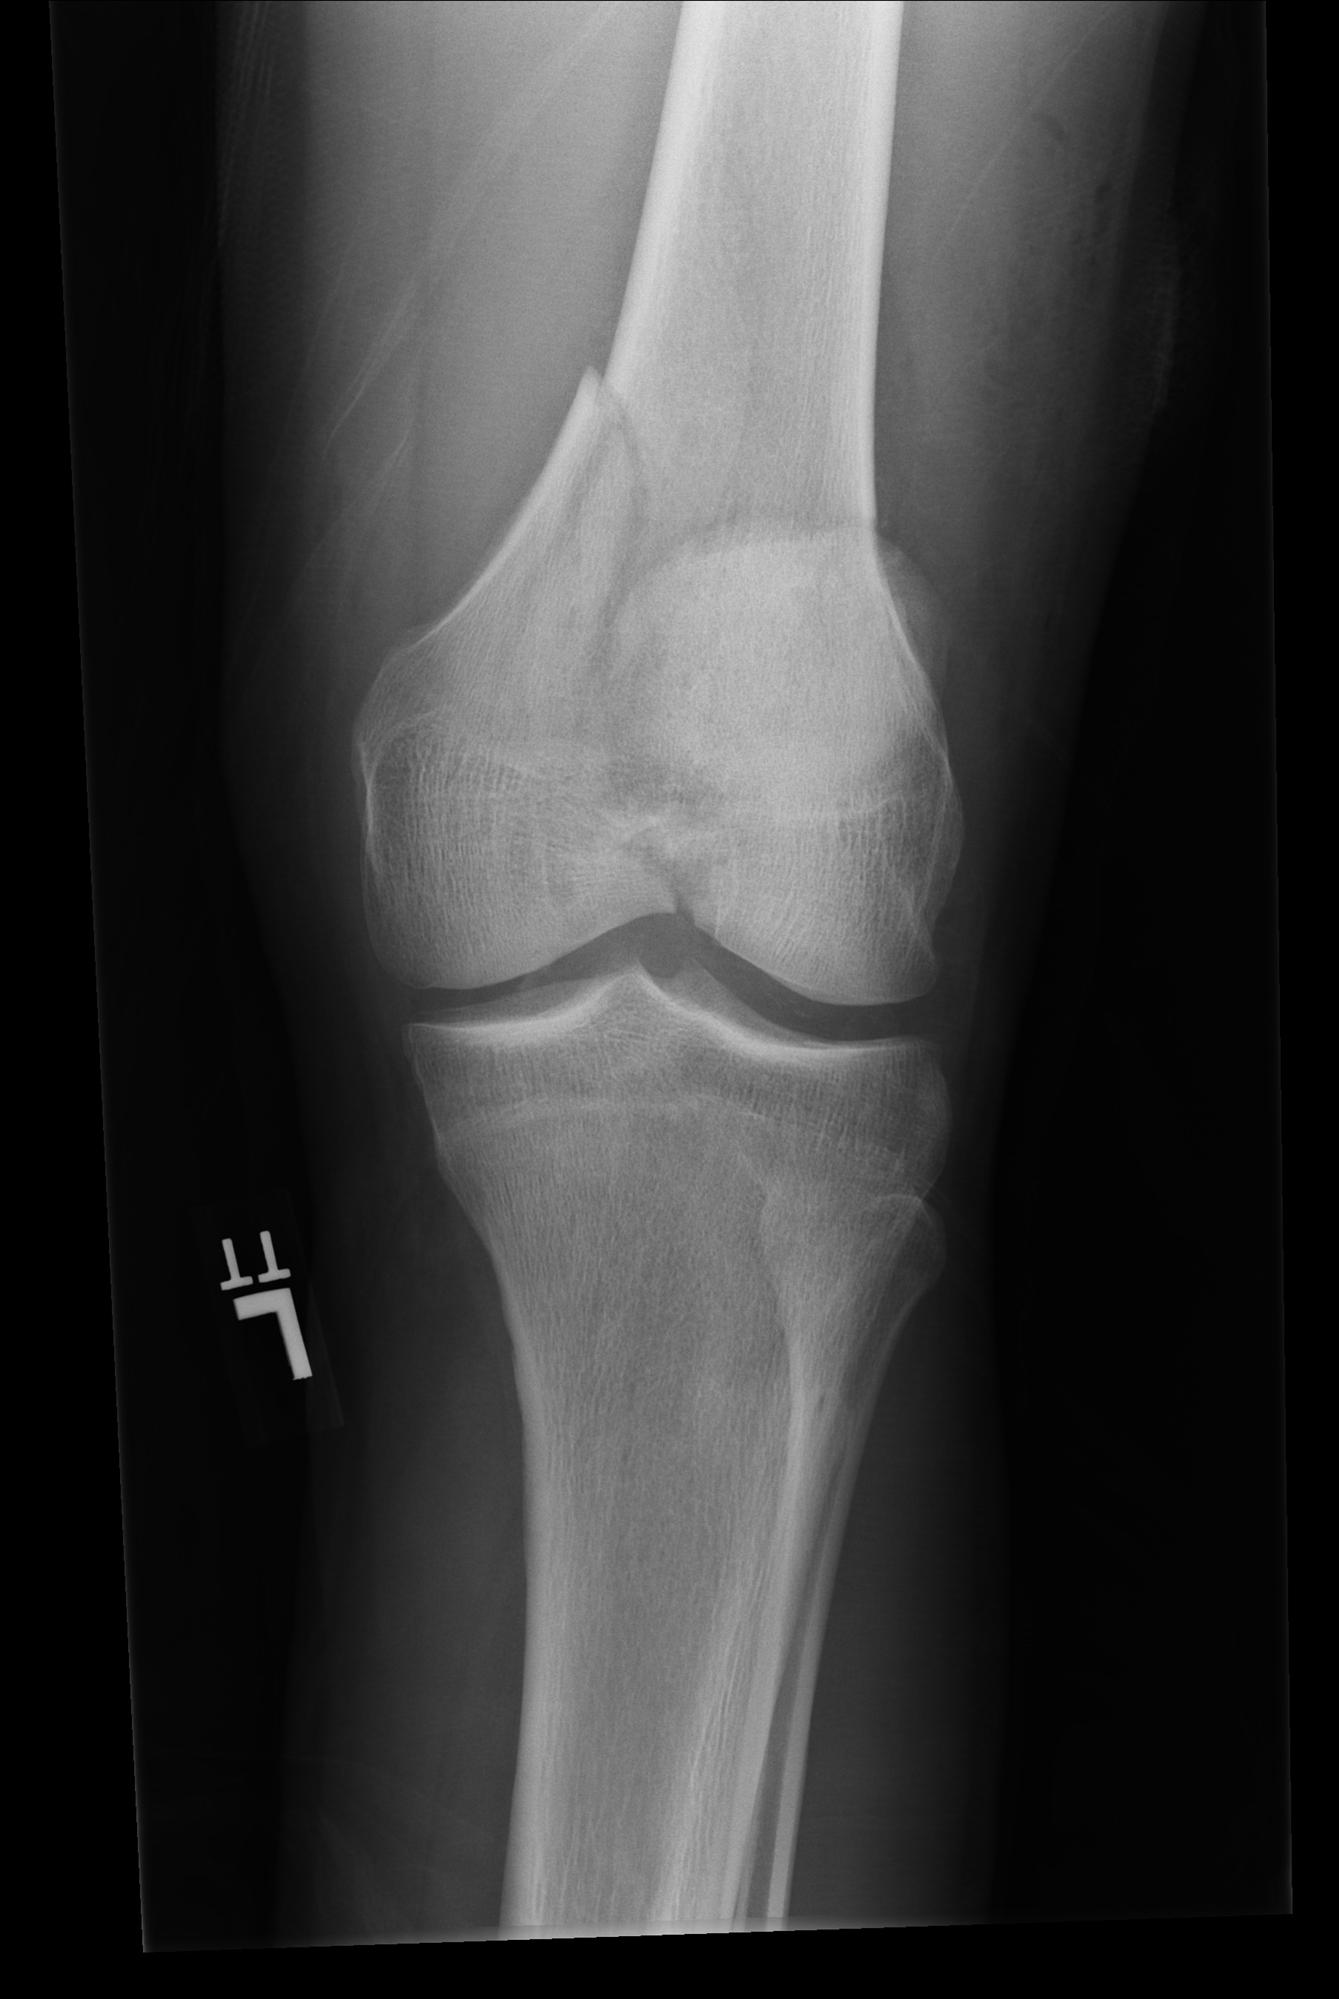 https://upload.orthobullets.com/topic/12026/images/preop femur ap.jpg